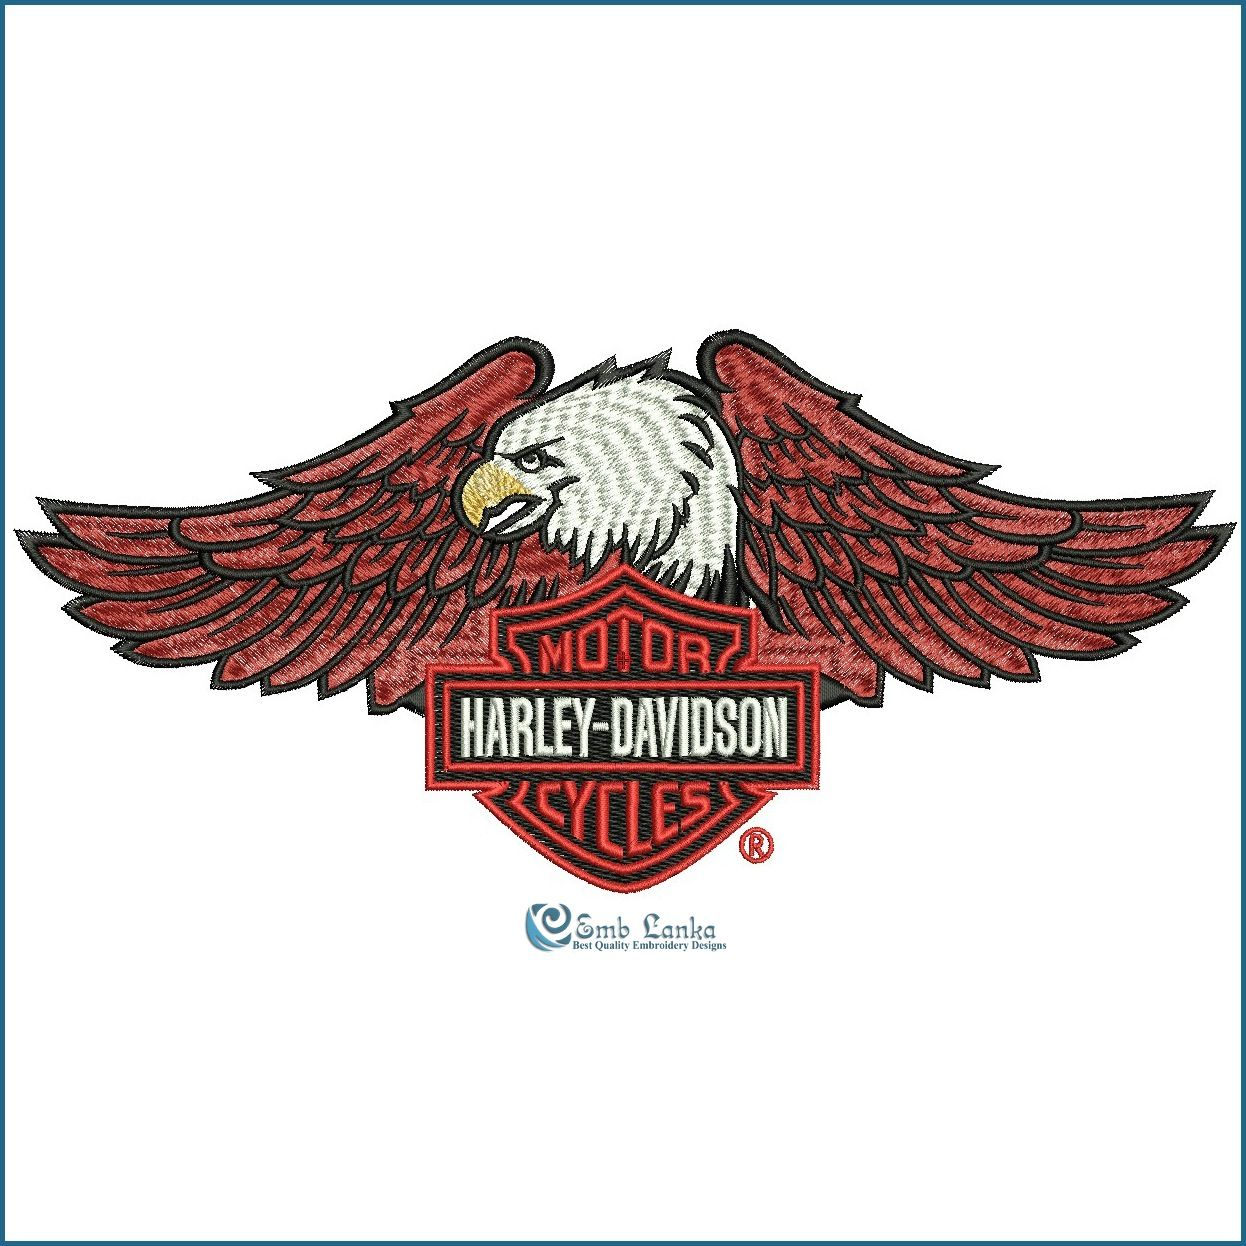 Harley Davidson Embroidery Designs Harley Davidson Embroidery